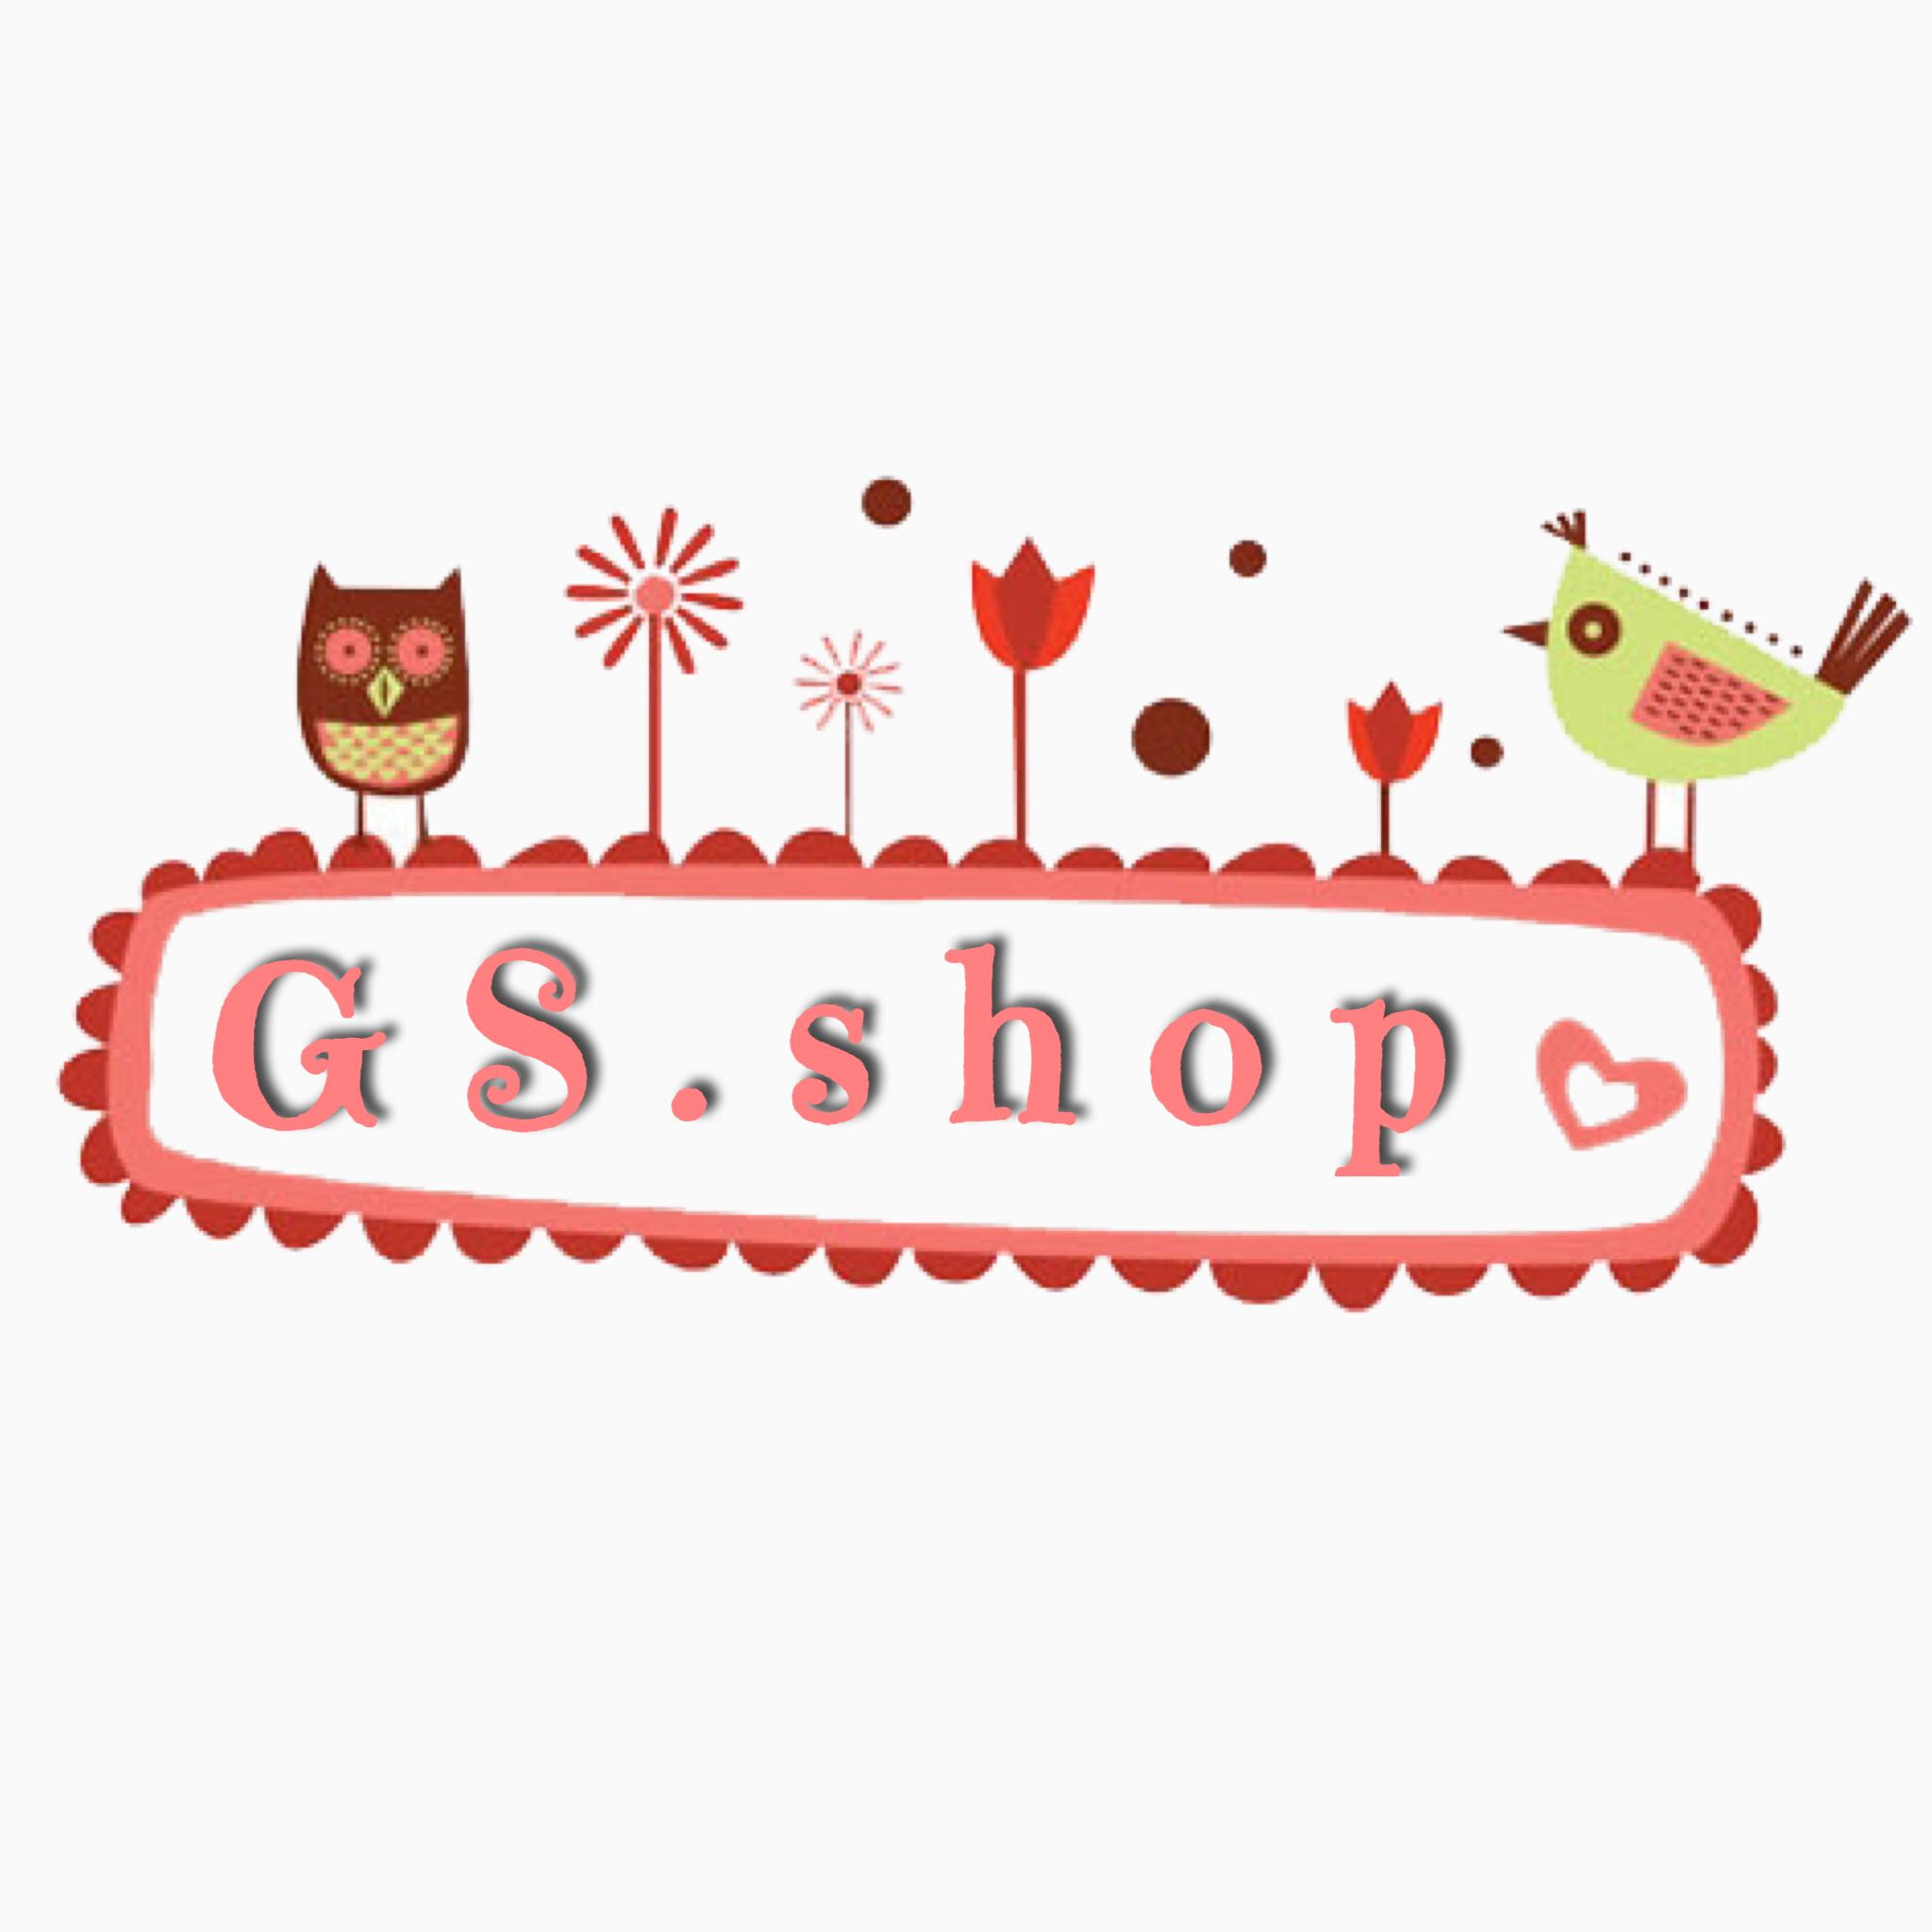 gs.shopp